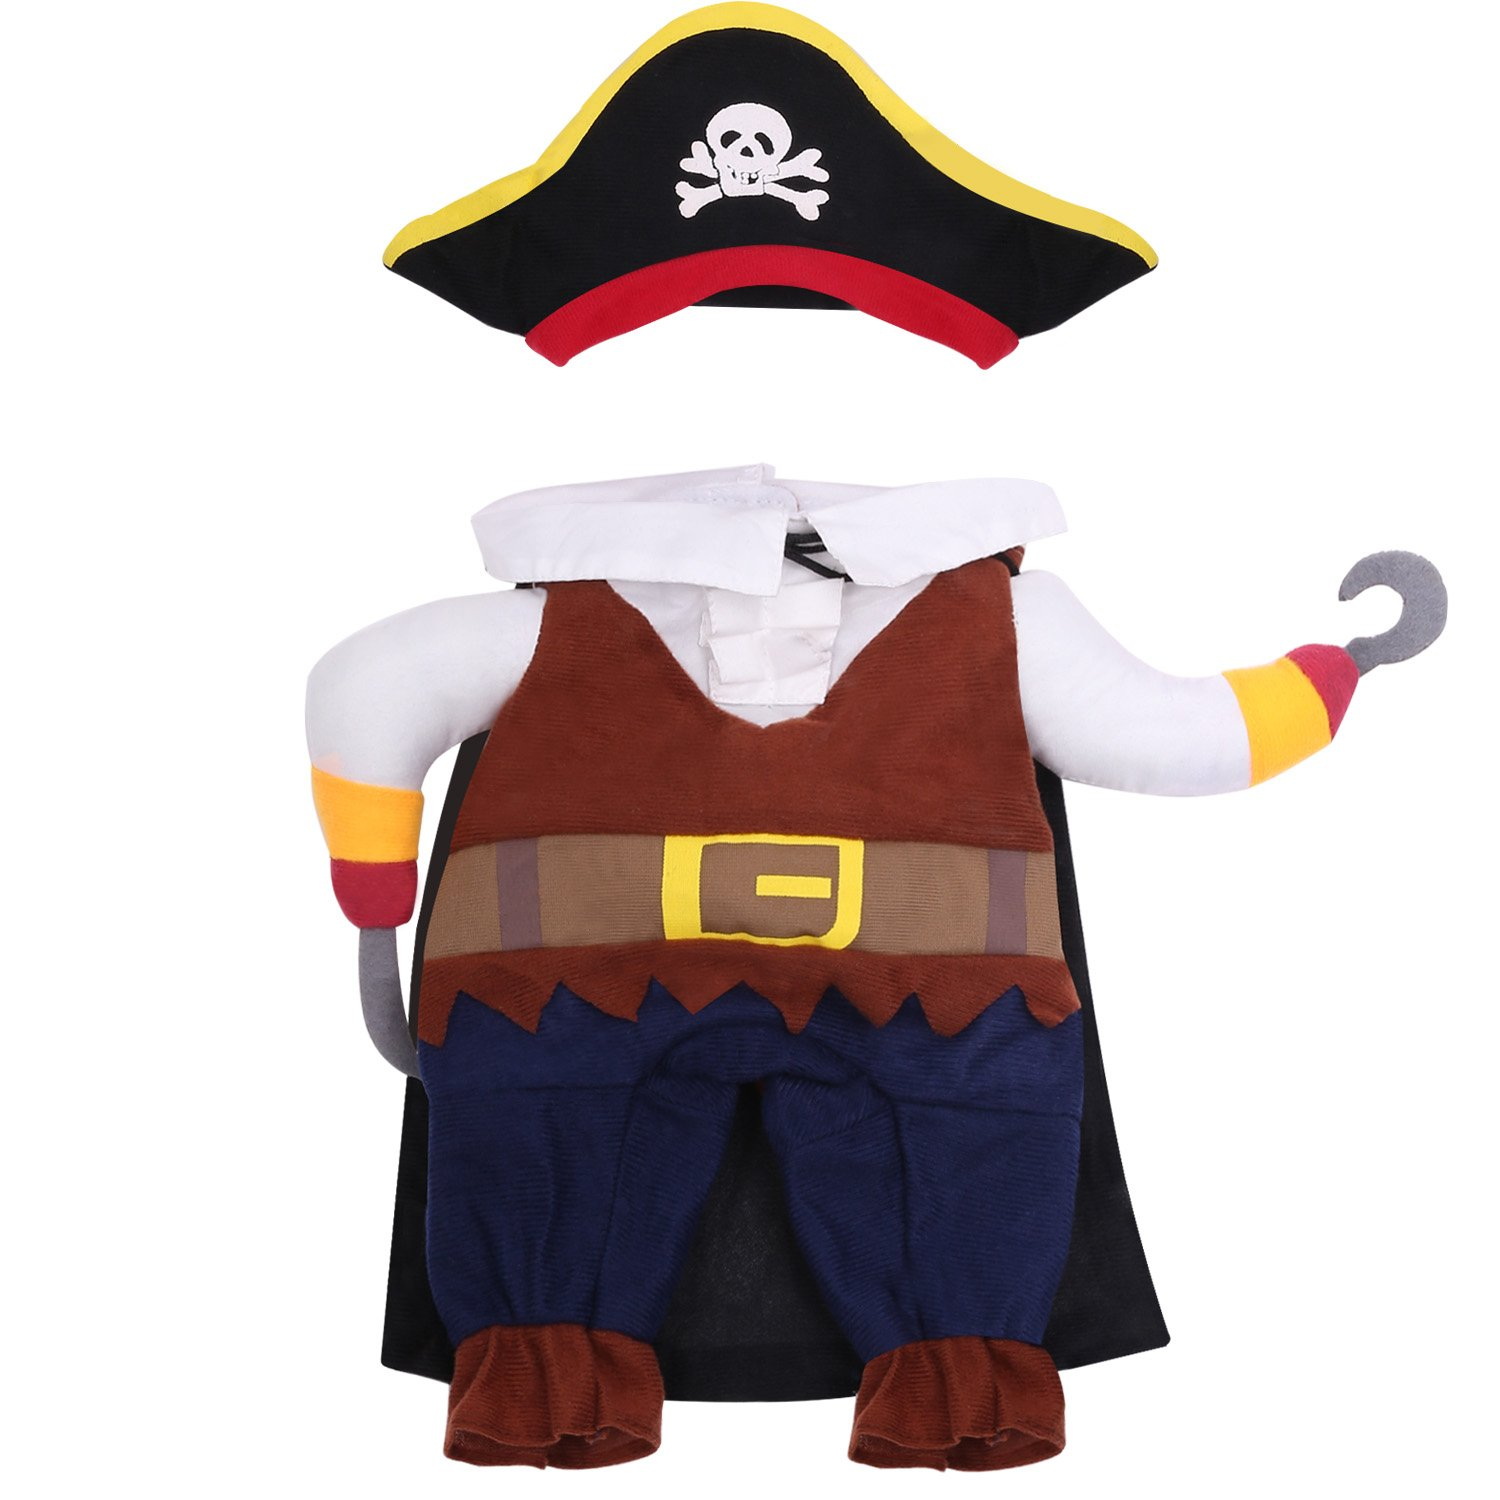 L Pawaboo Pet Costume, Funny Pet Dog Cat Clothes Pirate Costume Outfit Jumpsuit Clothes with Skull Hat of The Carbbean Style for Halloween Christmas, Large Size, Coffee